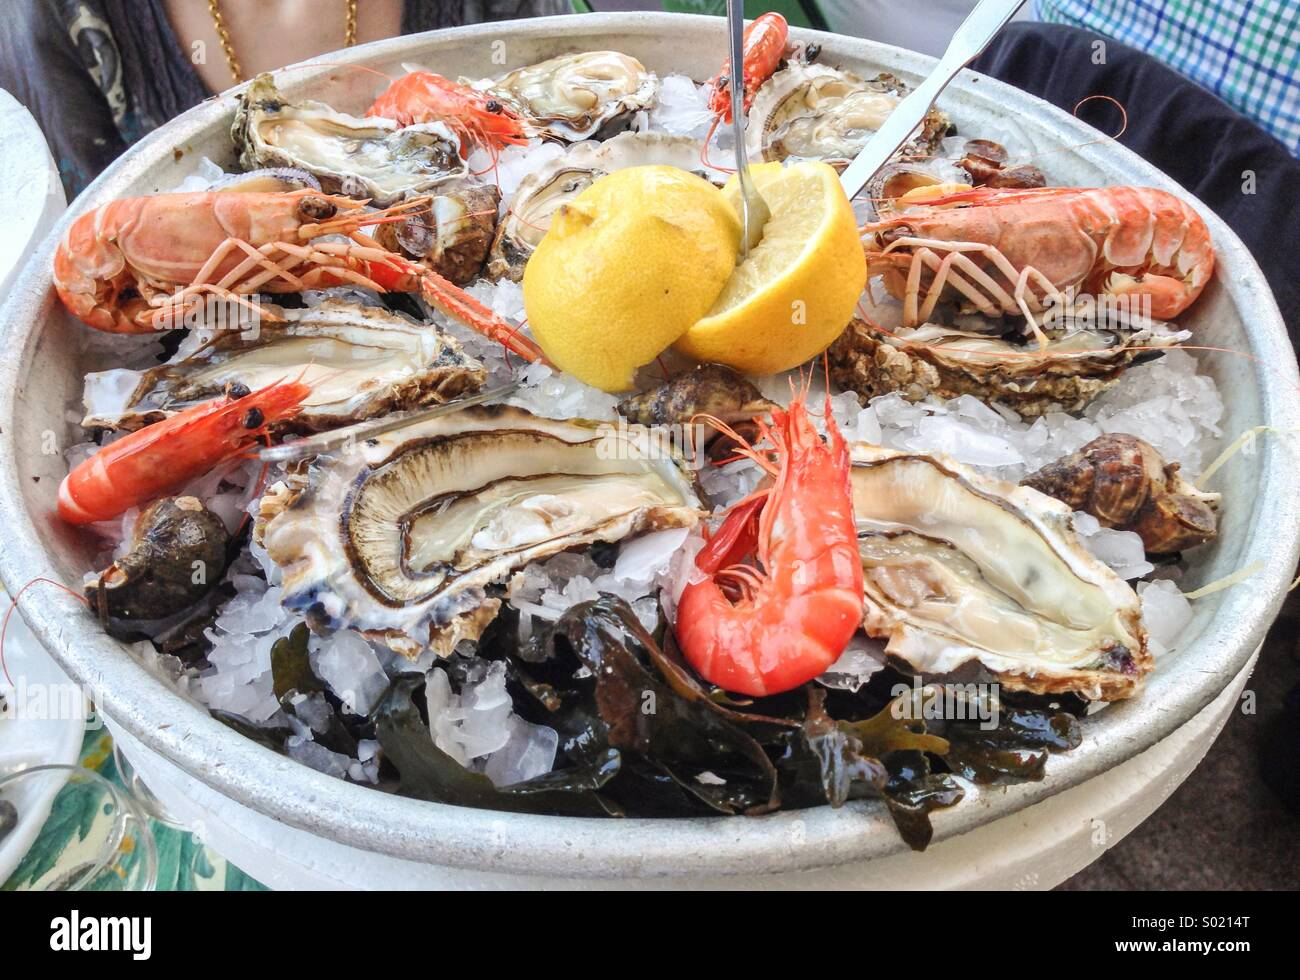 Crustaceans and oysters seafood platter at ice - Stock Image